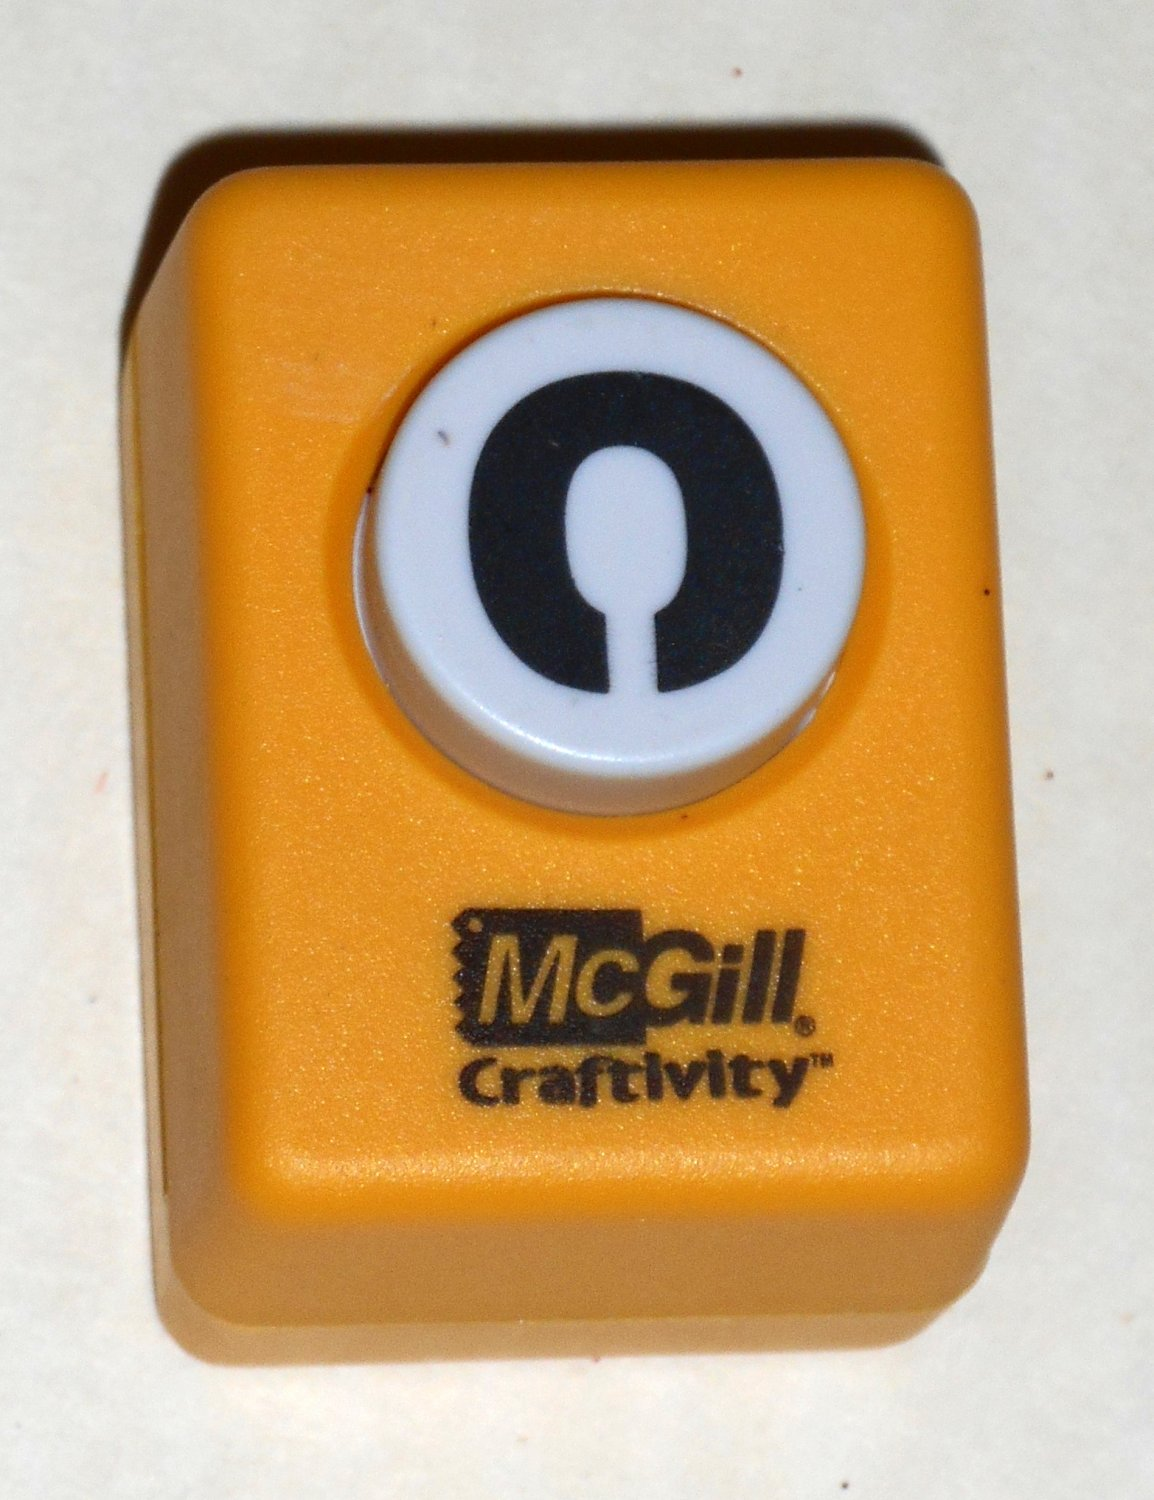 McGill Craftivity Paper Punch Letter O Upper Case Capital Scrapbooking